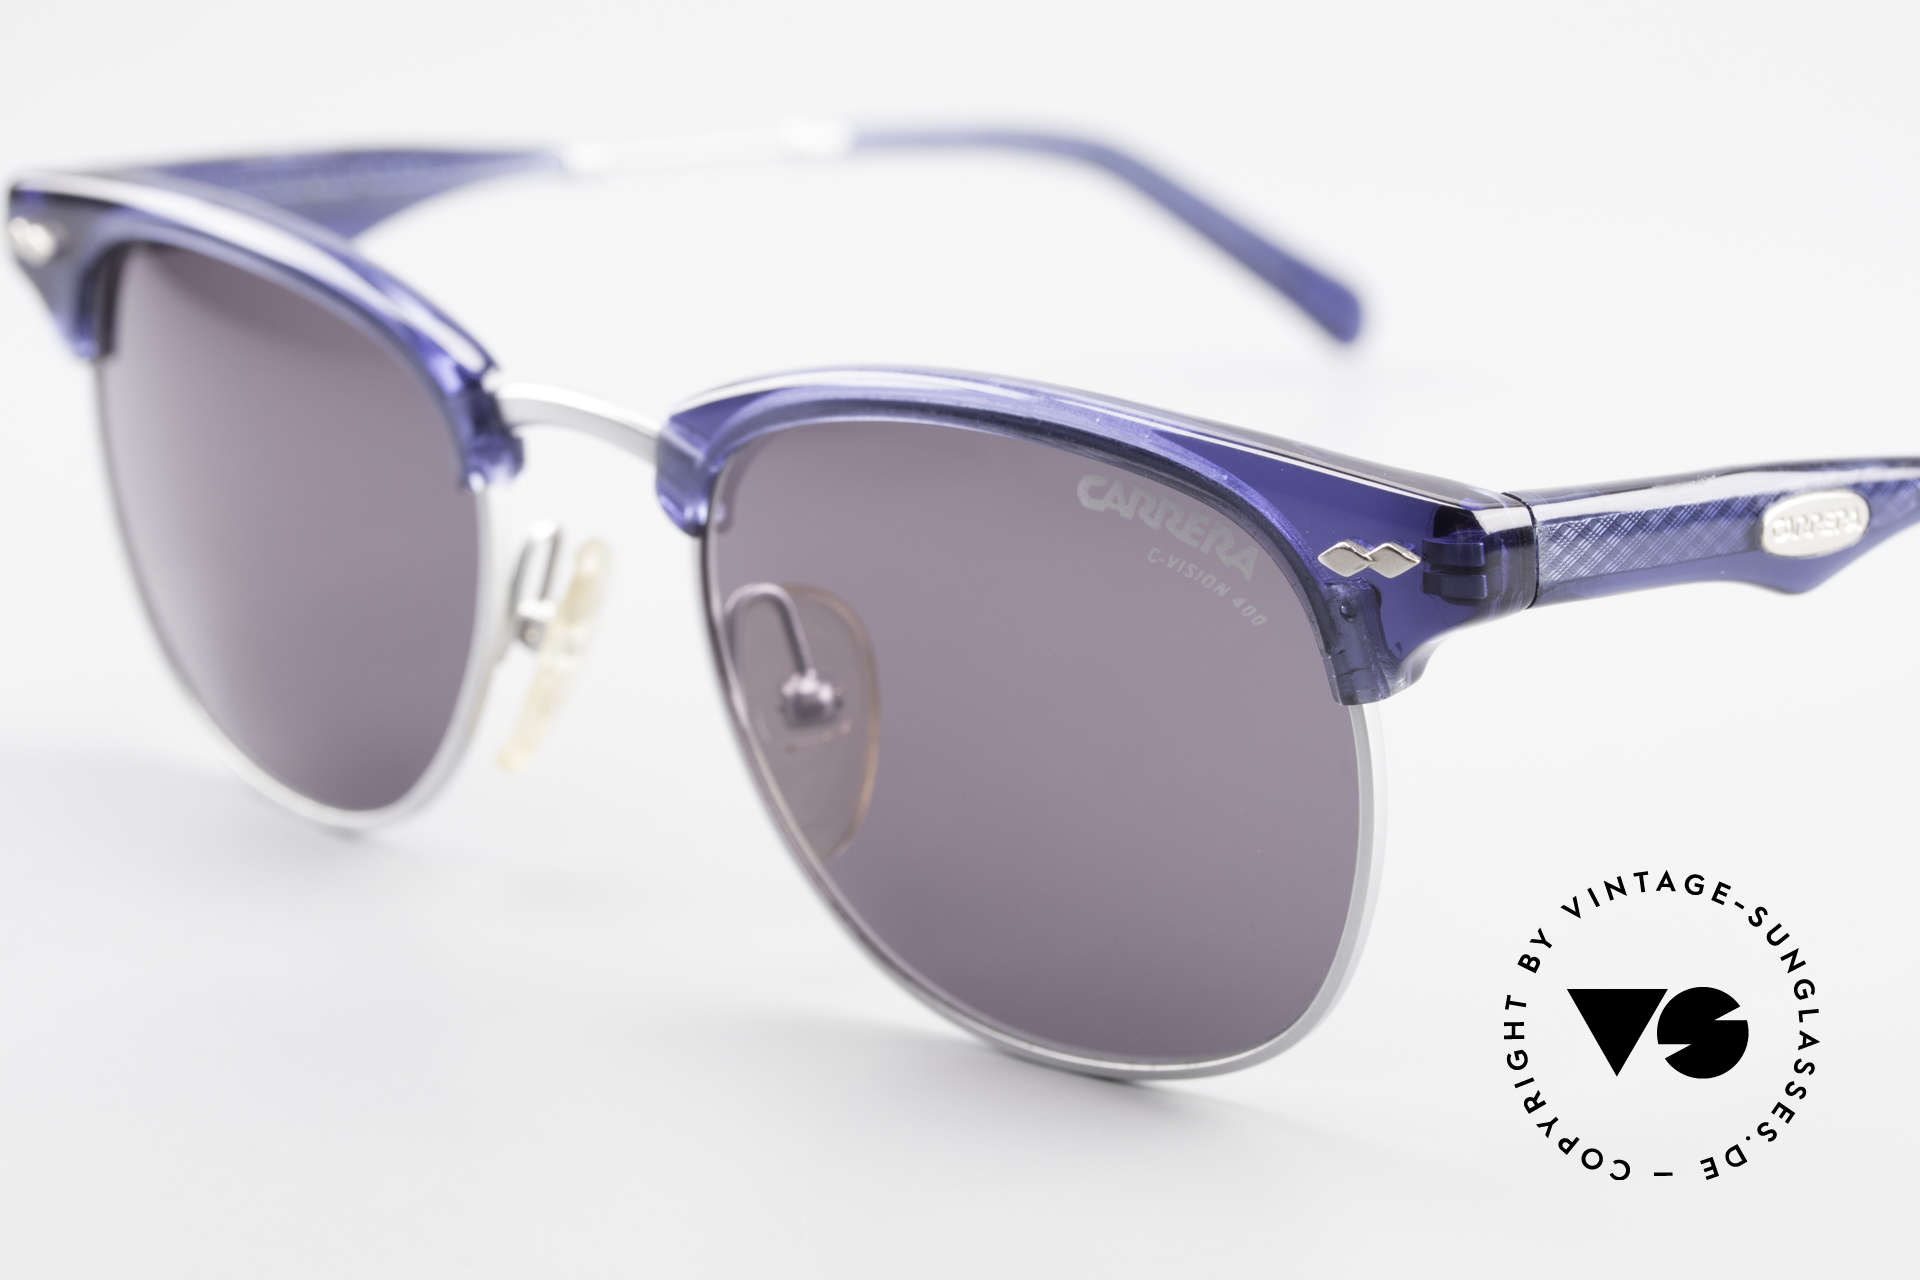 Carrera 5324 Vintage Panto Sunglasses 90s, Carrera C-VISION 400 lenses (100% UV protection), Made for Men